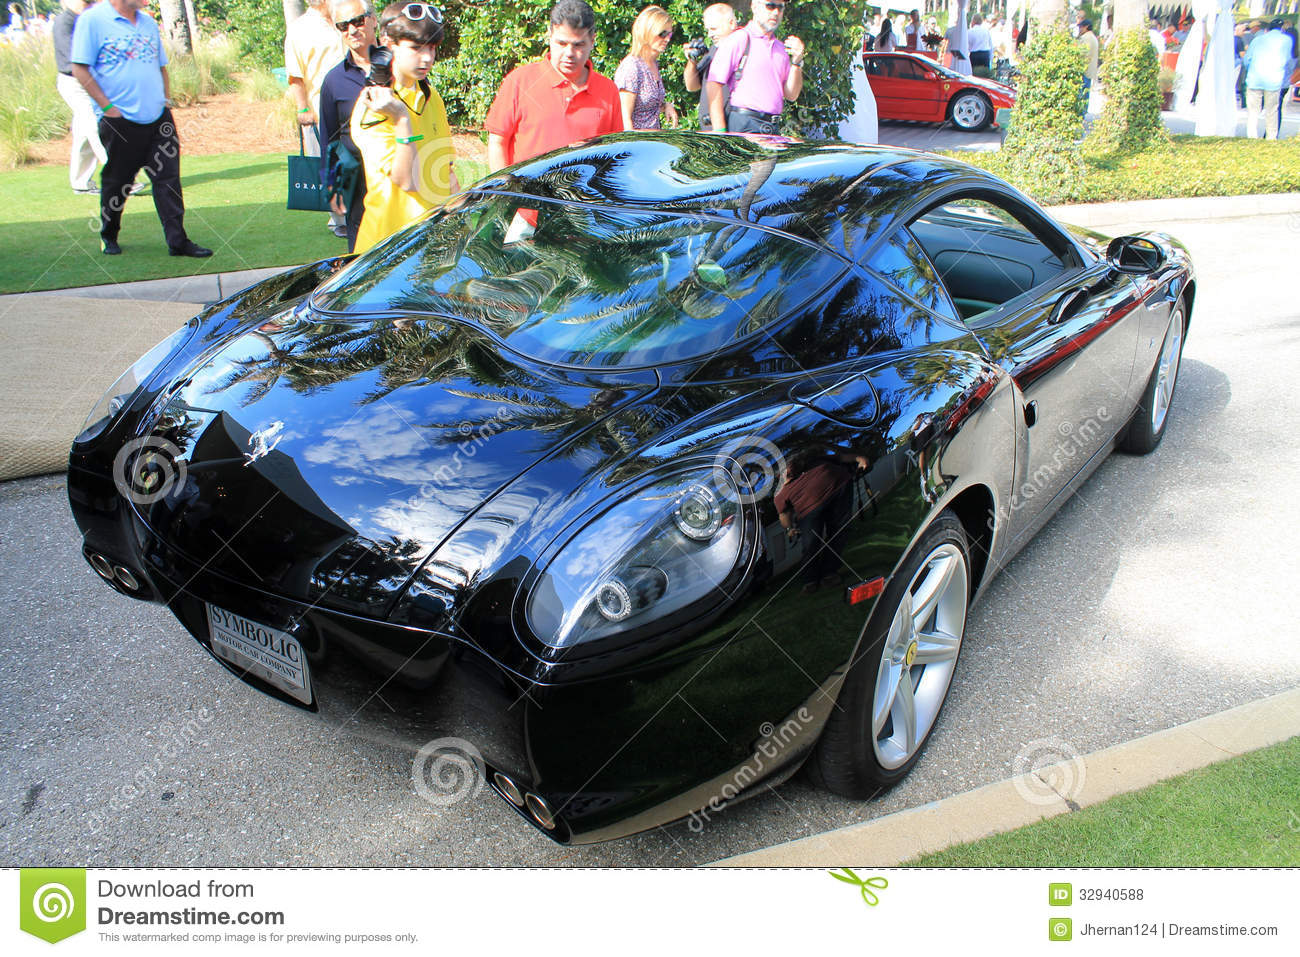 Very Rare Modern Ferrari Sports Car Rear Stock Photo 32940588 - Megapixl